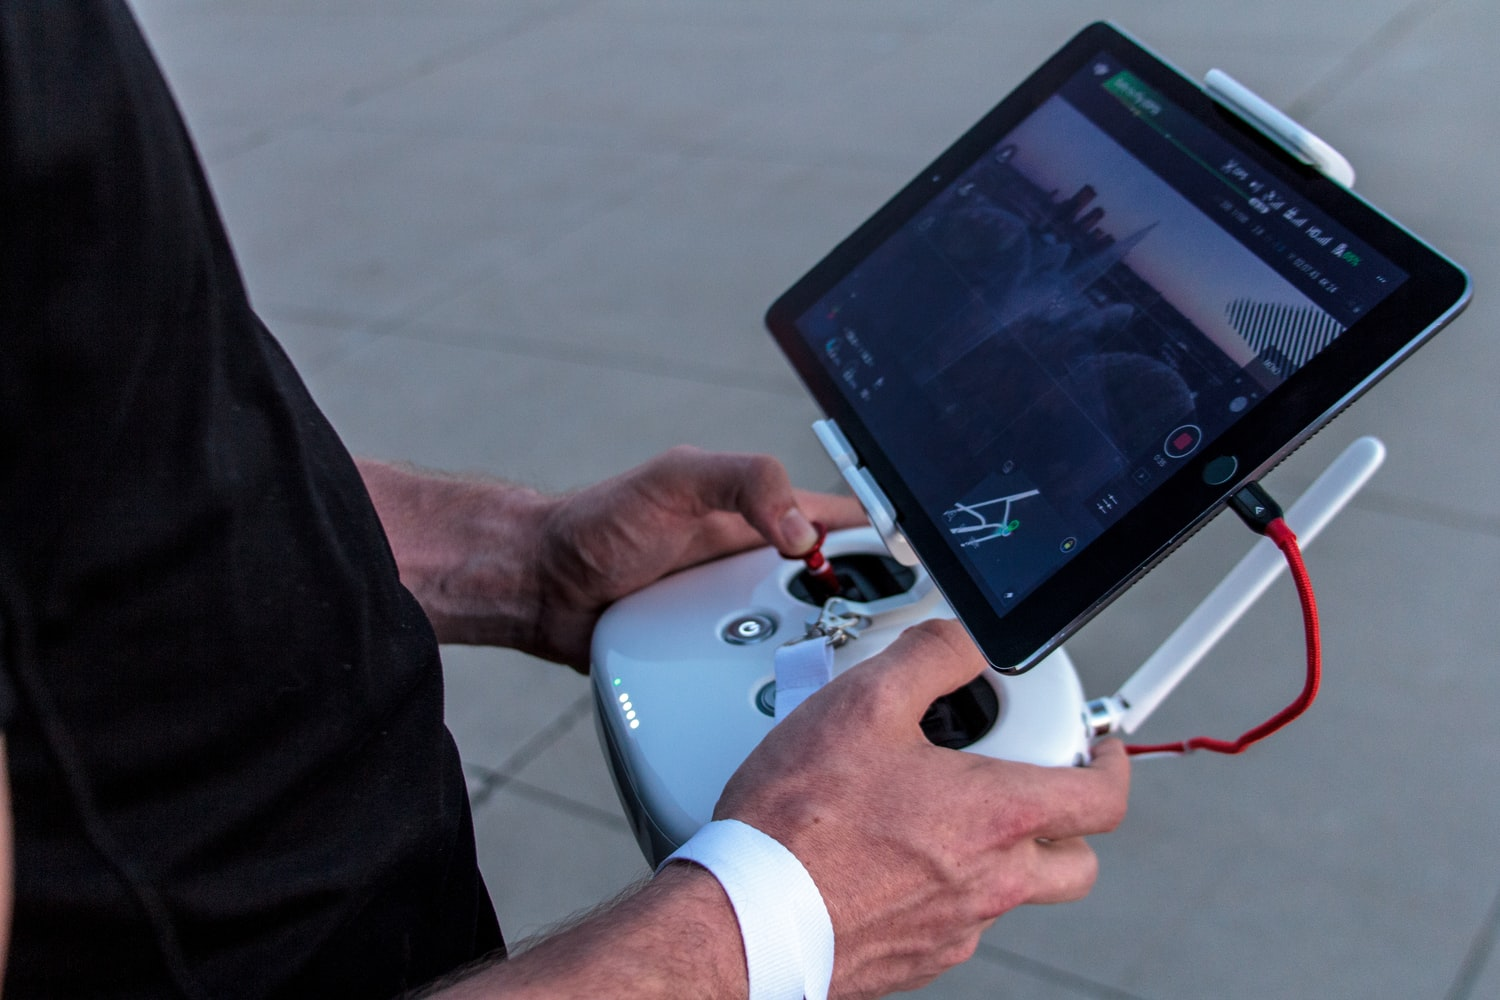 A person is holding a controller for the DIY Drone